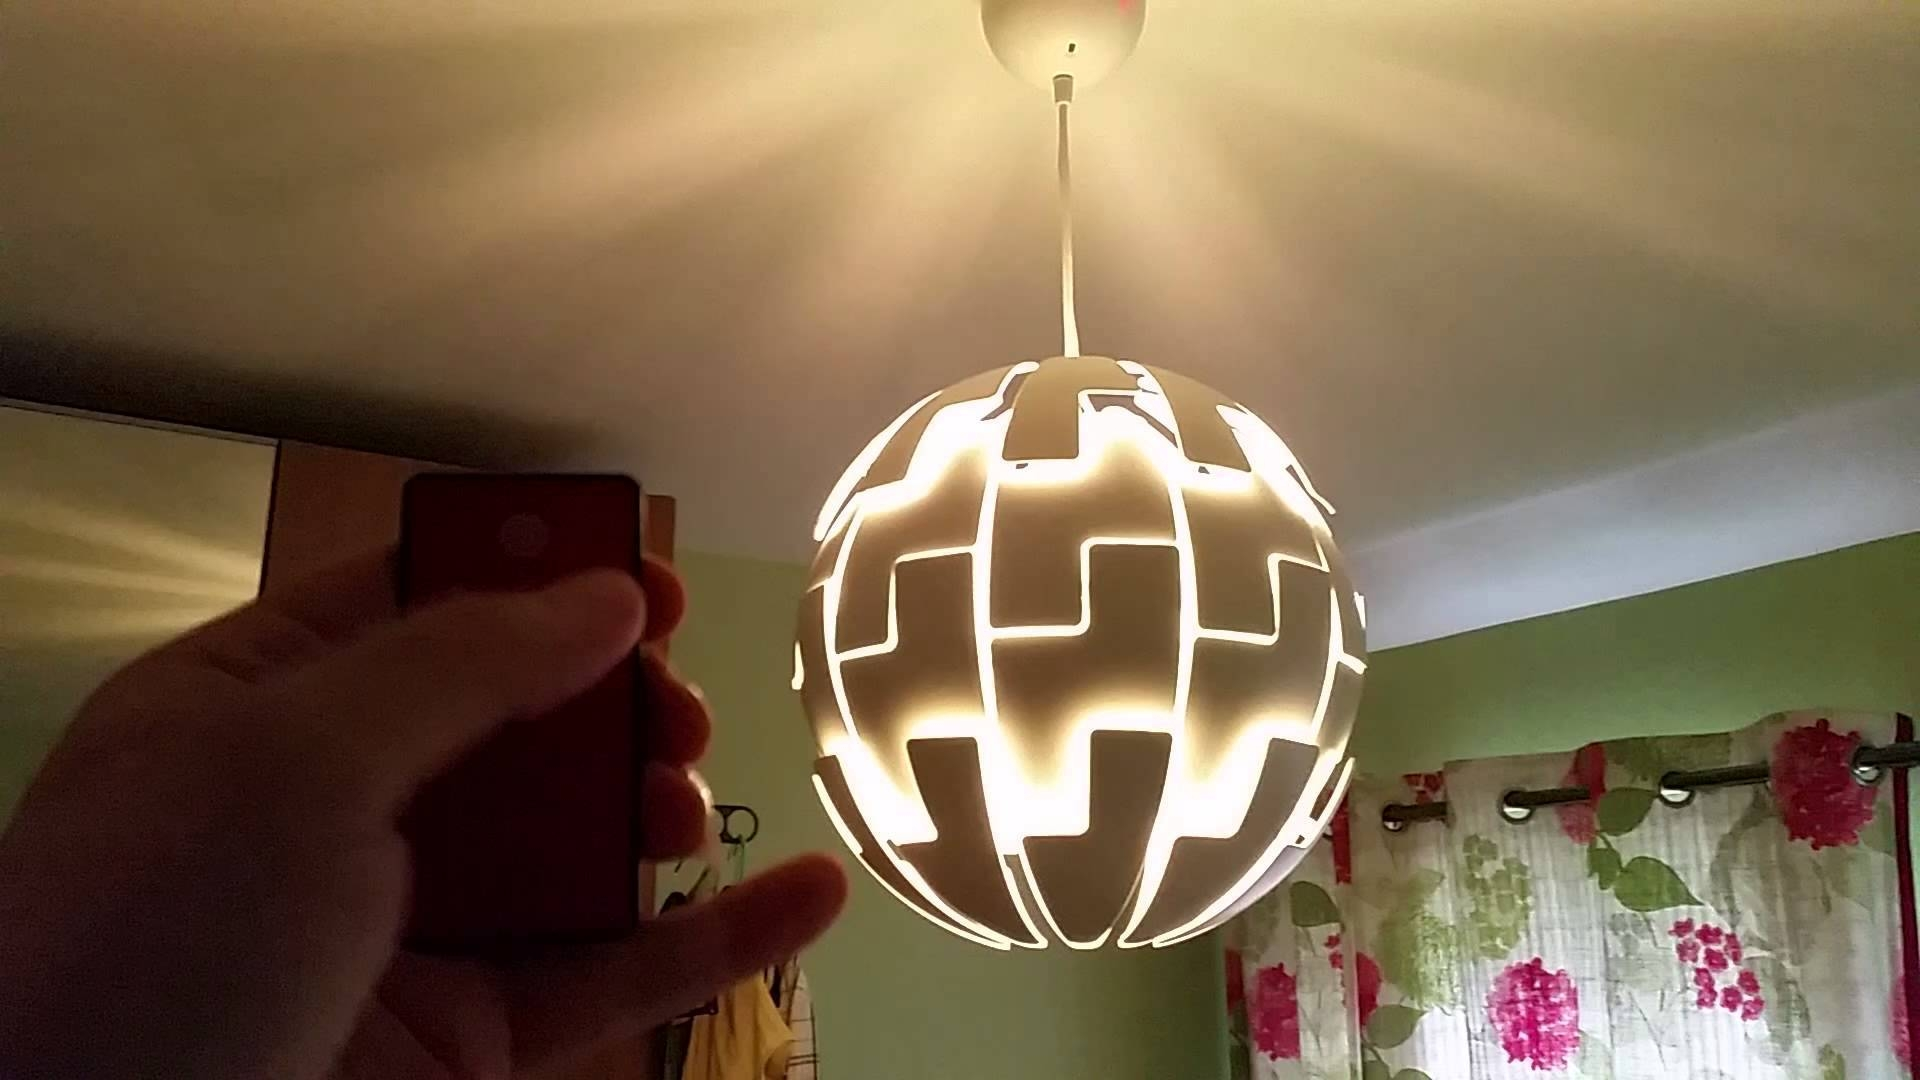 Remote Controlled Ikea Death-Star Lamp - Youtube within Ikea Lighting Pendants (Image 13 of 15)